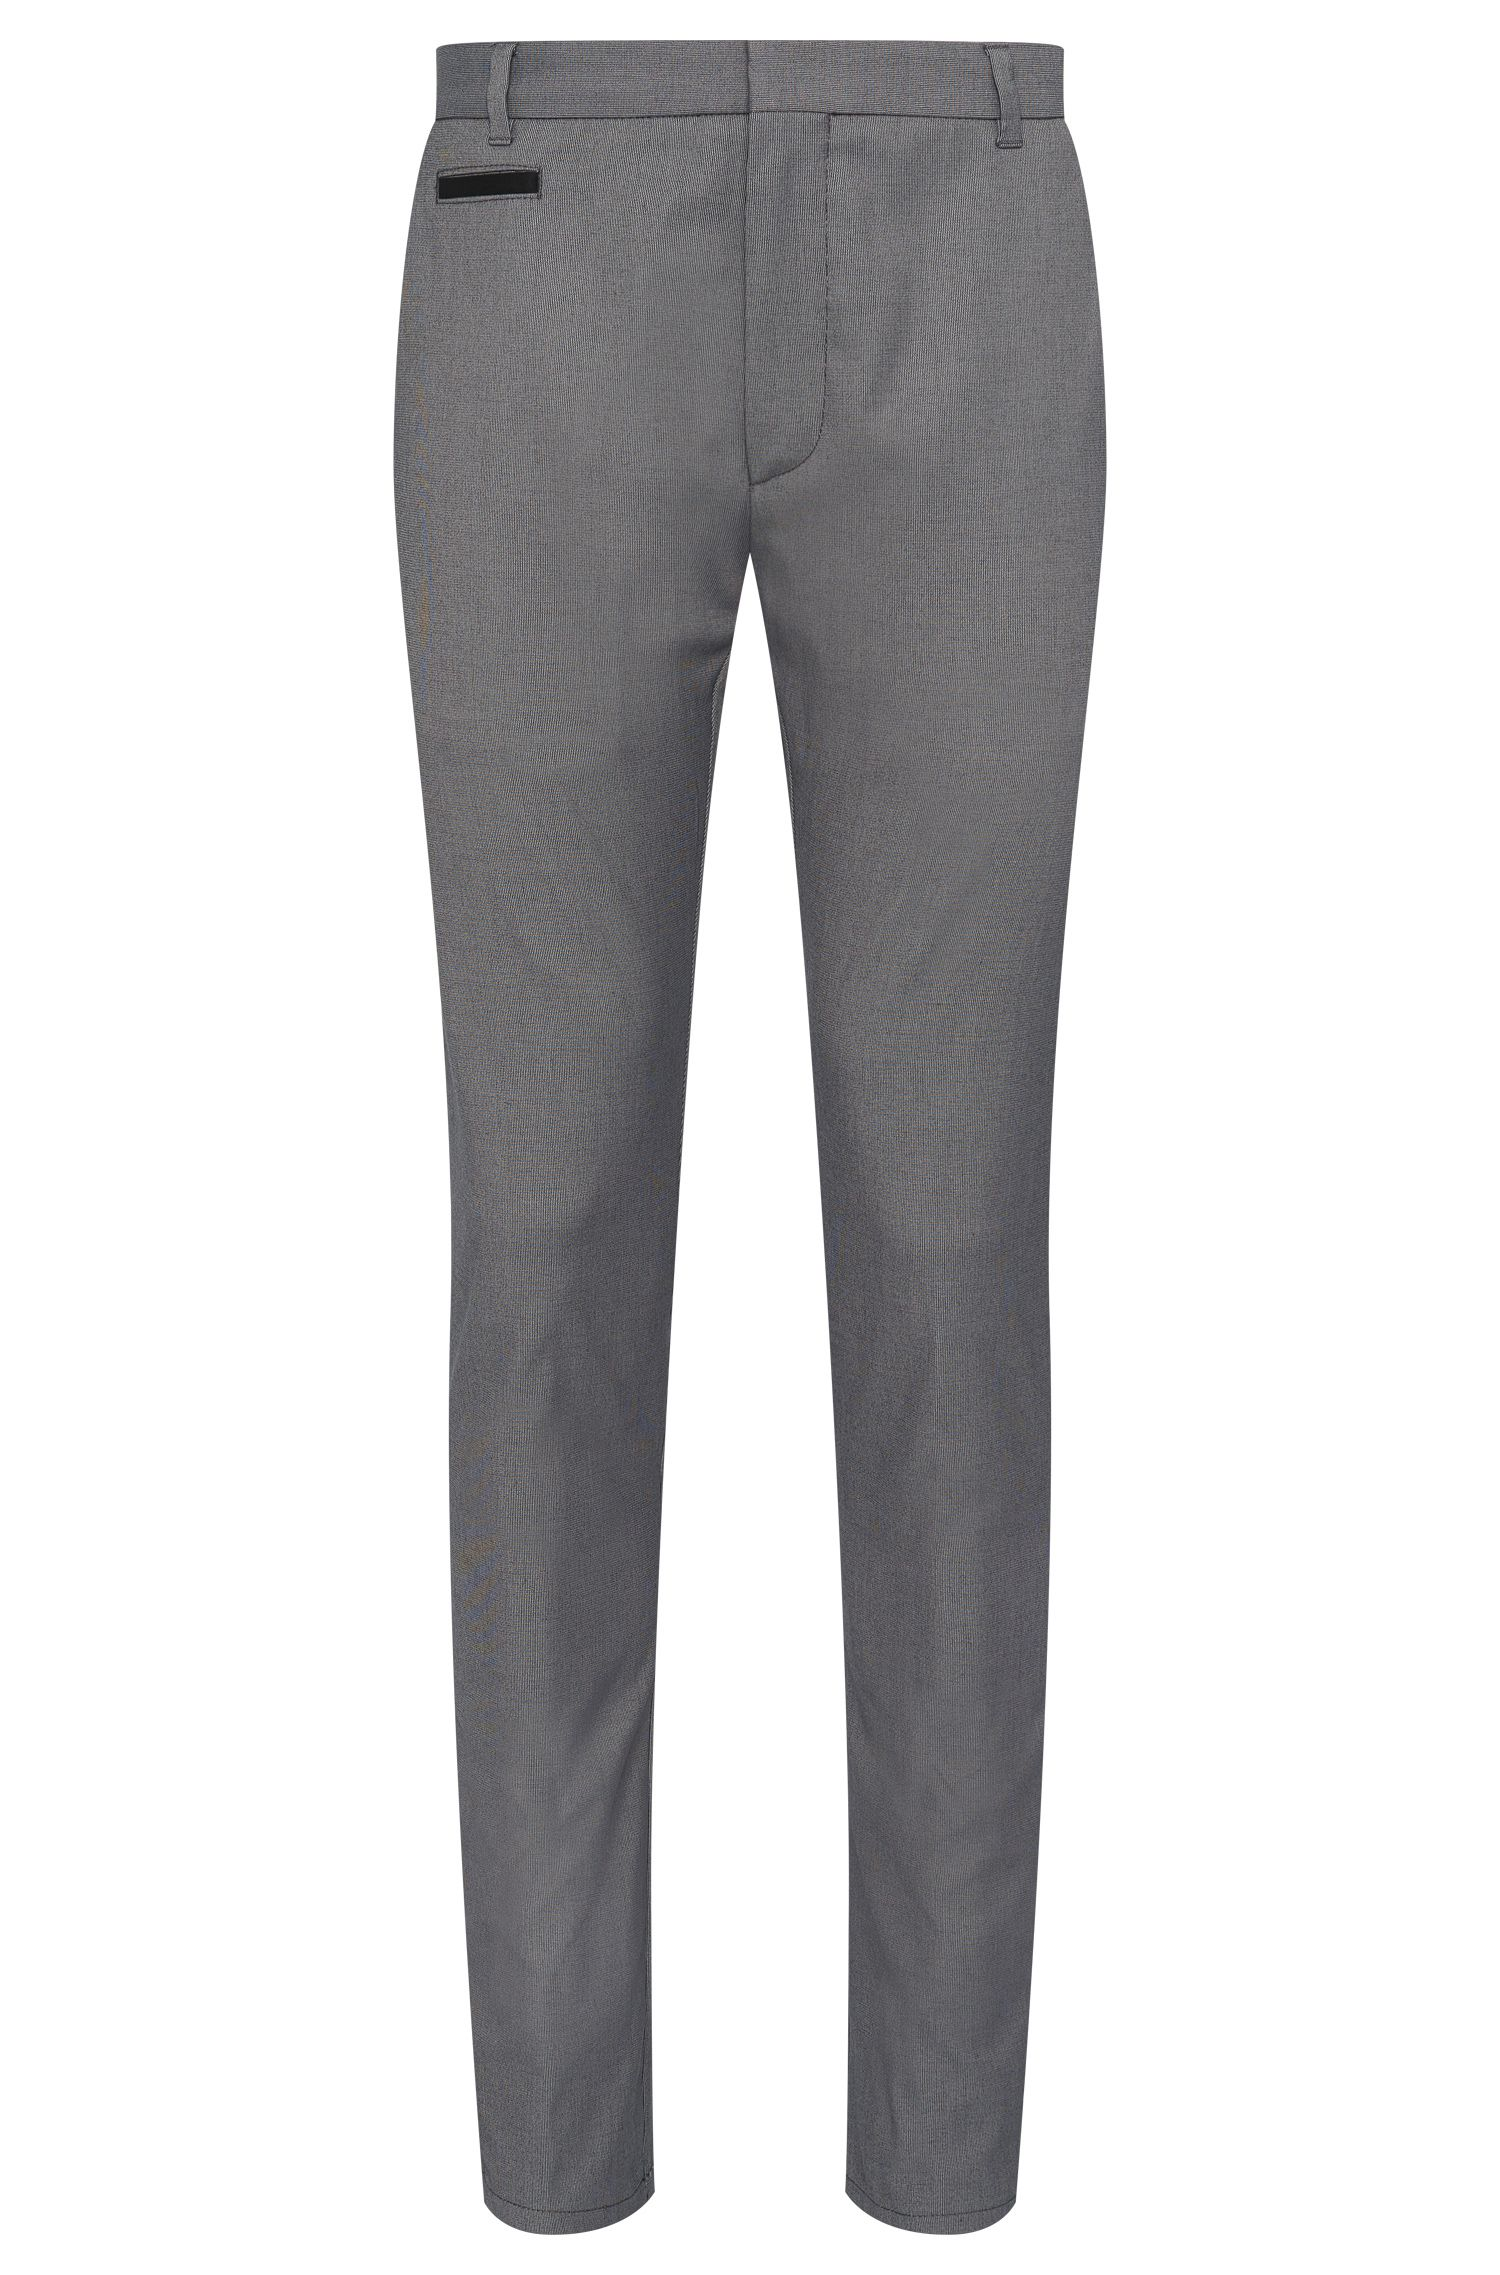 'Heralt' | Slim Fit, Stretch Cotton Blend Trousers